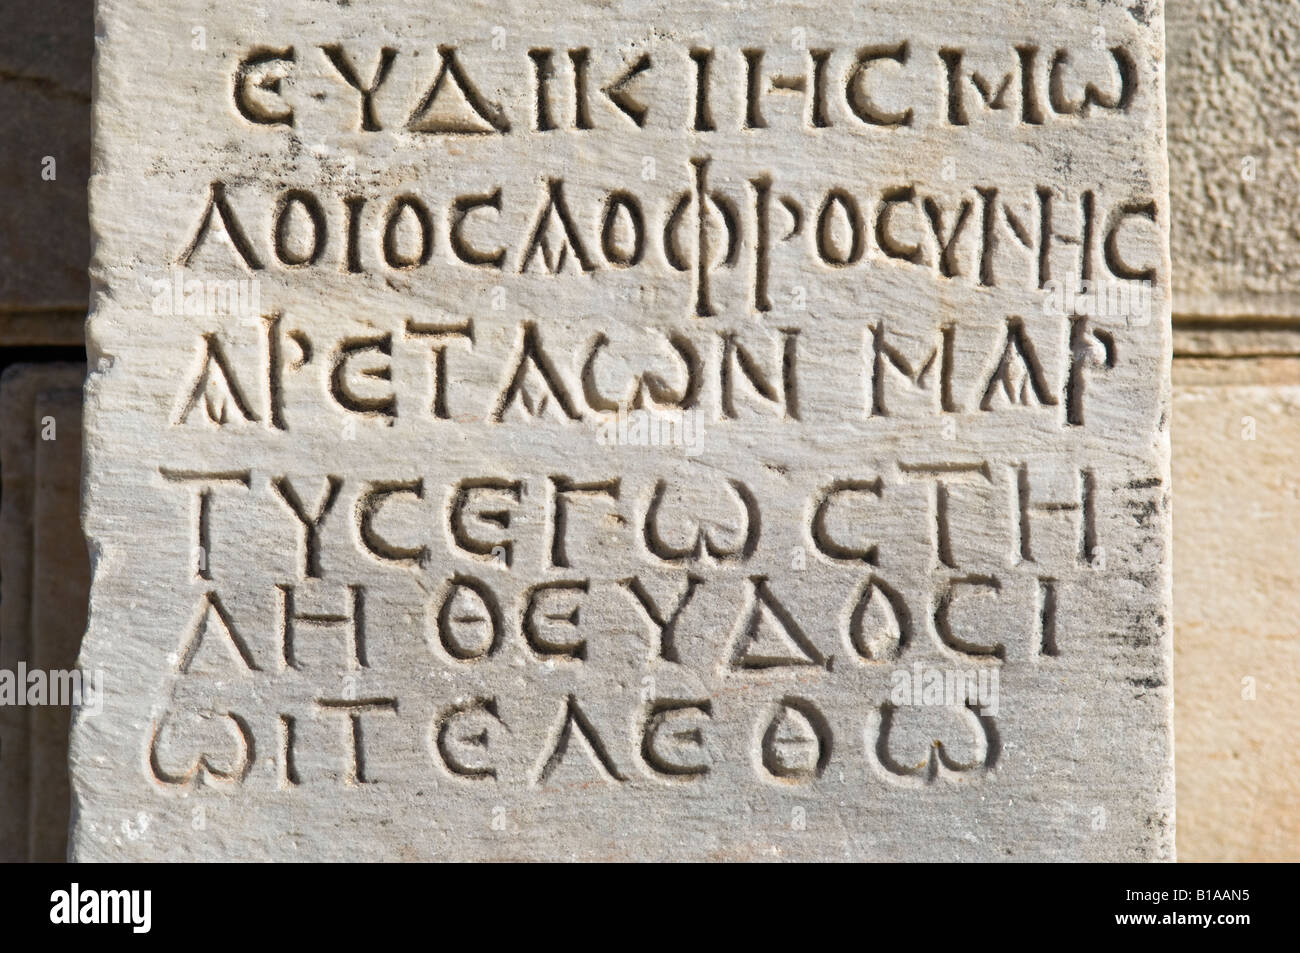 Close up photograph of Greek Inscription from the Hellenistic Period. Ancient City of Ephesus. - Stock Image